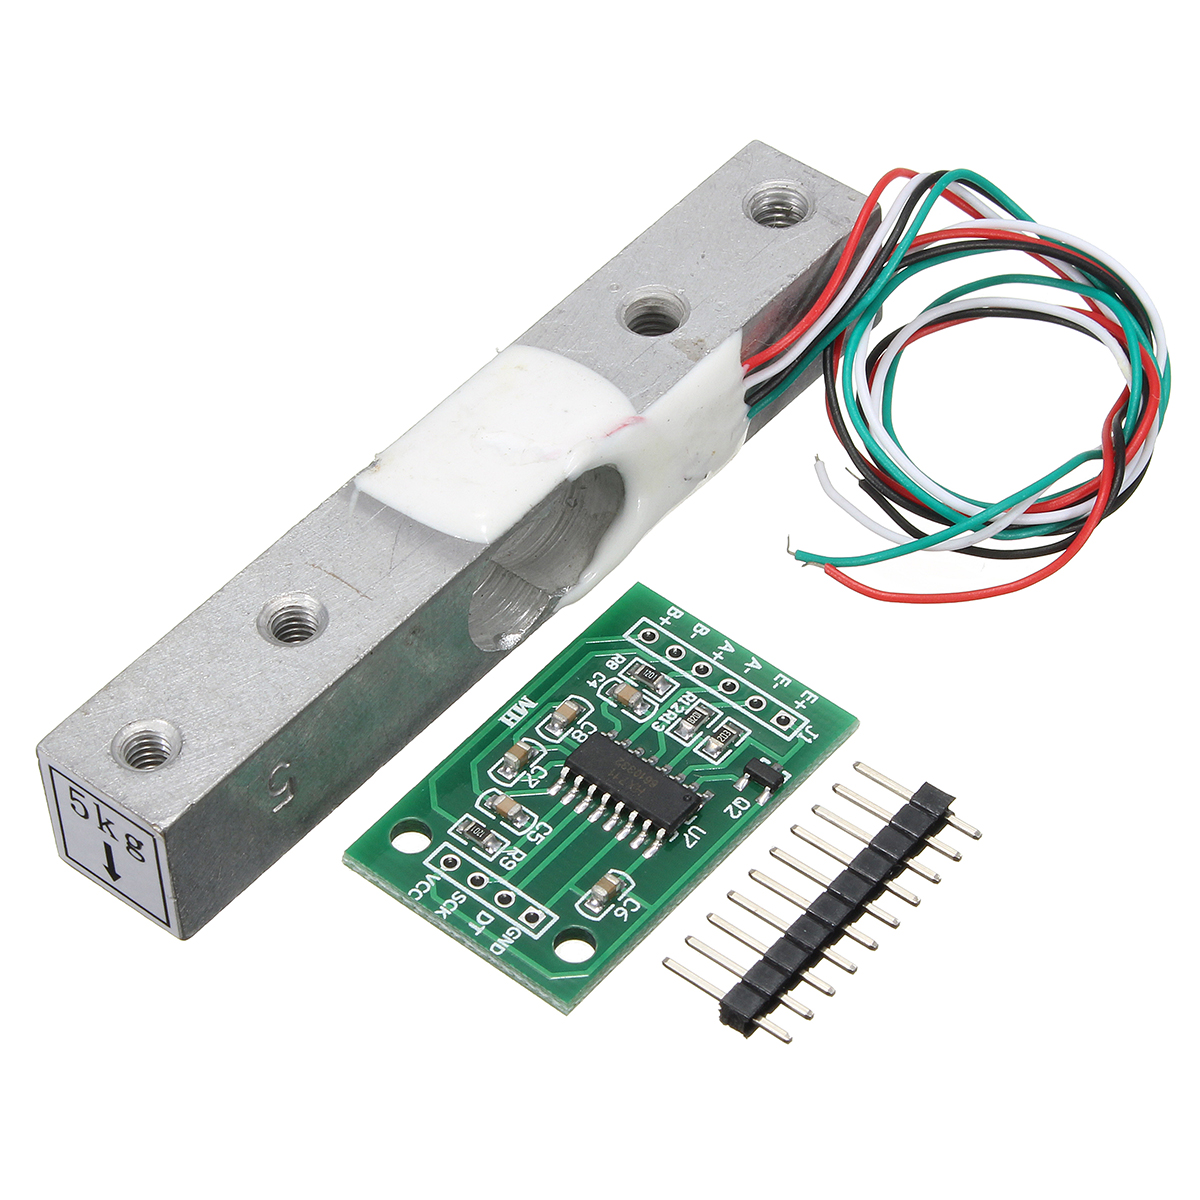 5kg Small Scale Load Cell Weighing Pressure Sensor With A